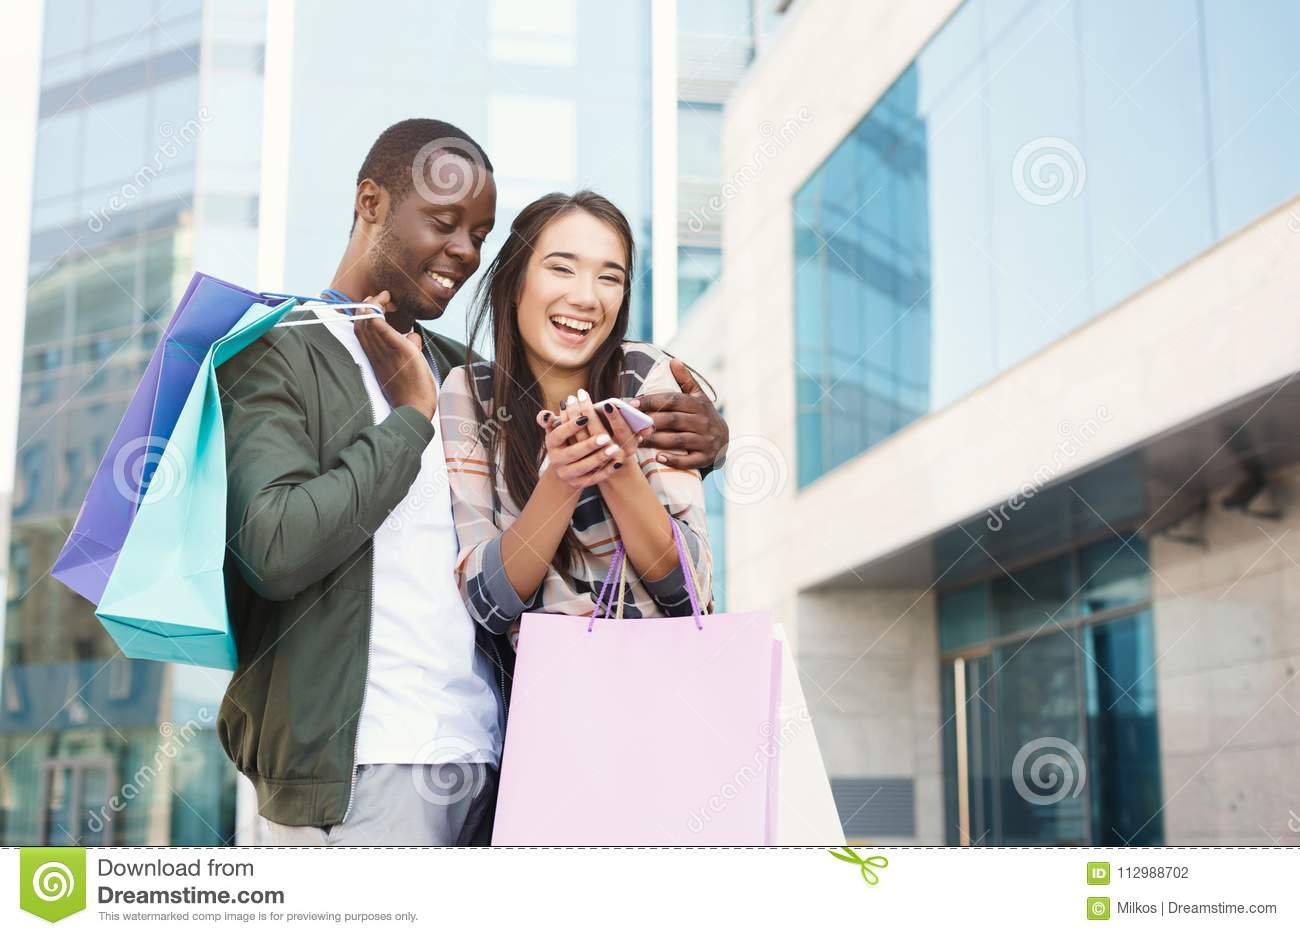 Multiethnic couple shopping together